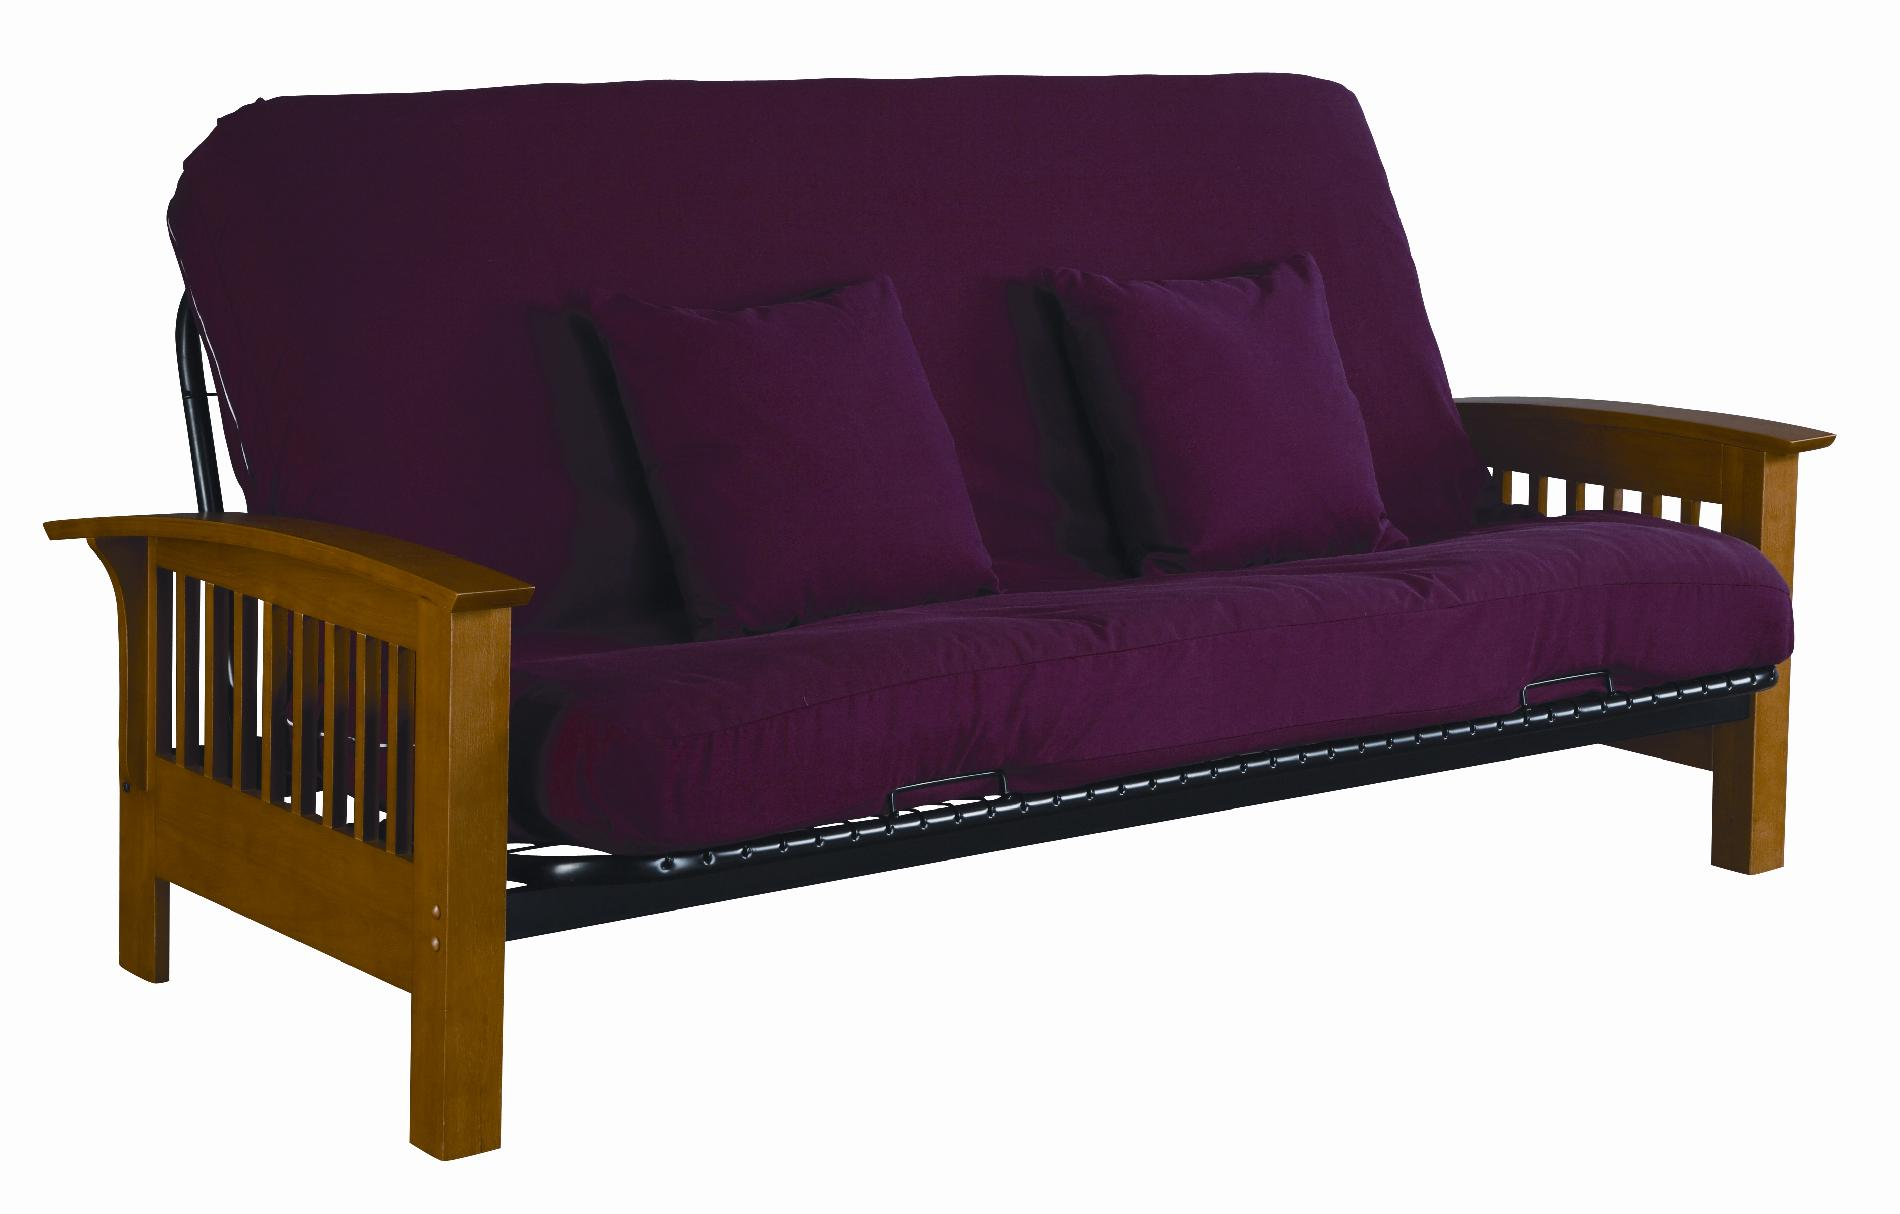 queen sofa bed sears double beds for sale do you have any futons that can be delivered to a new